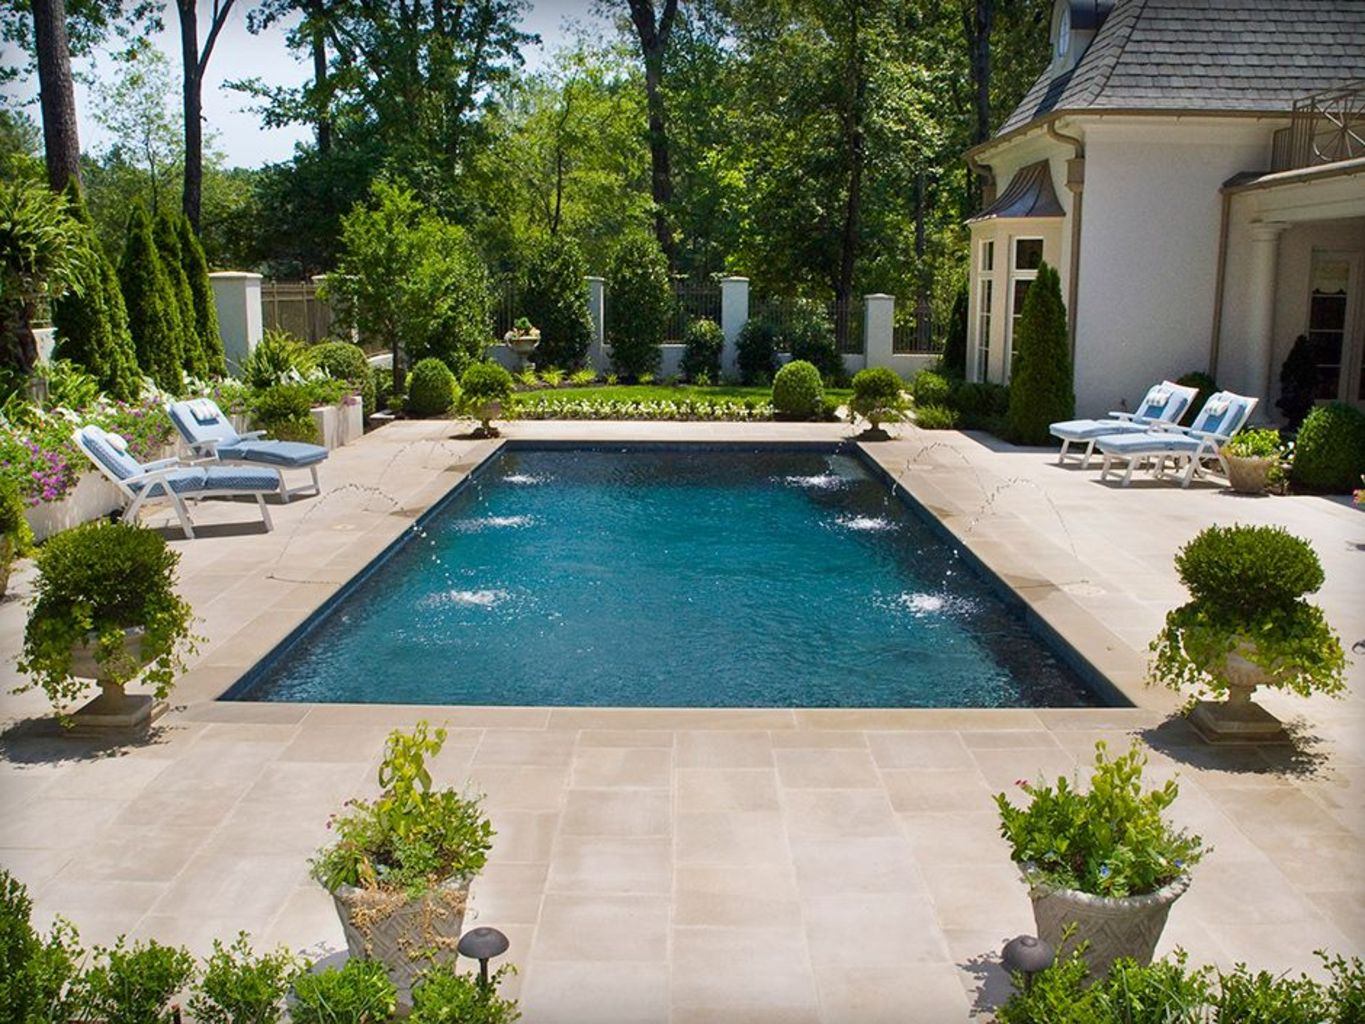 Small swimming pools made for small spaces and tight budgets Part 33